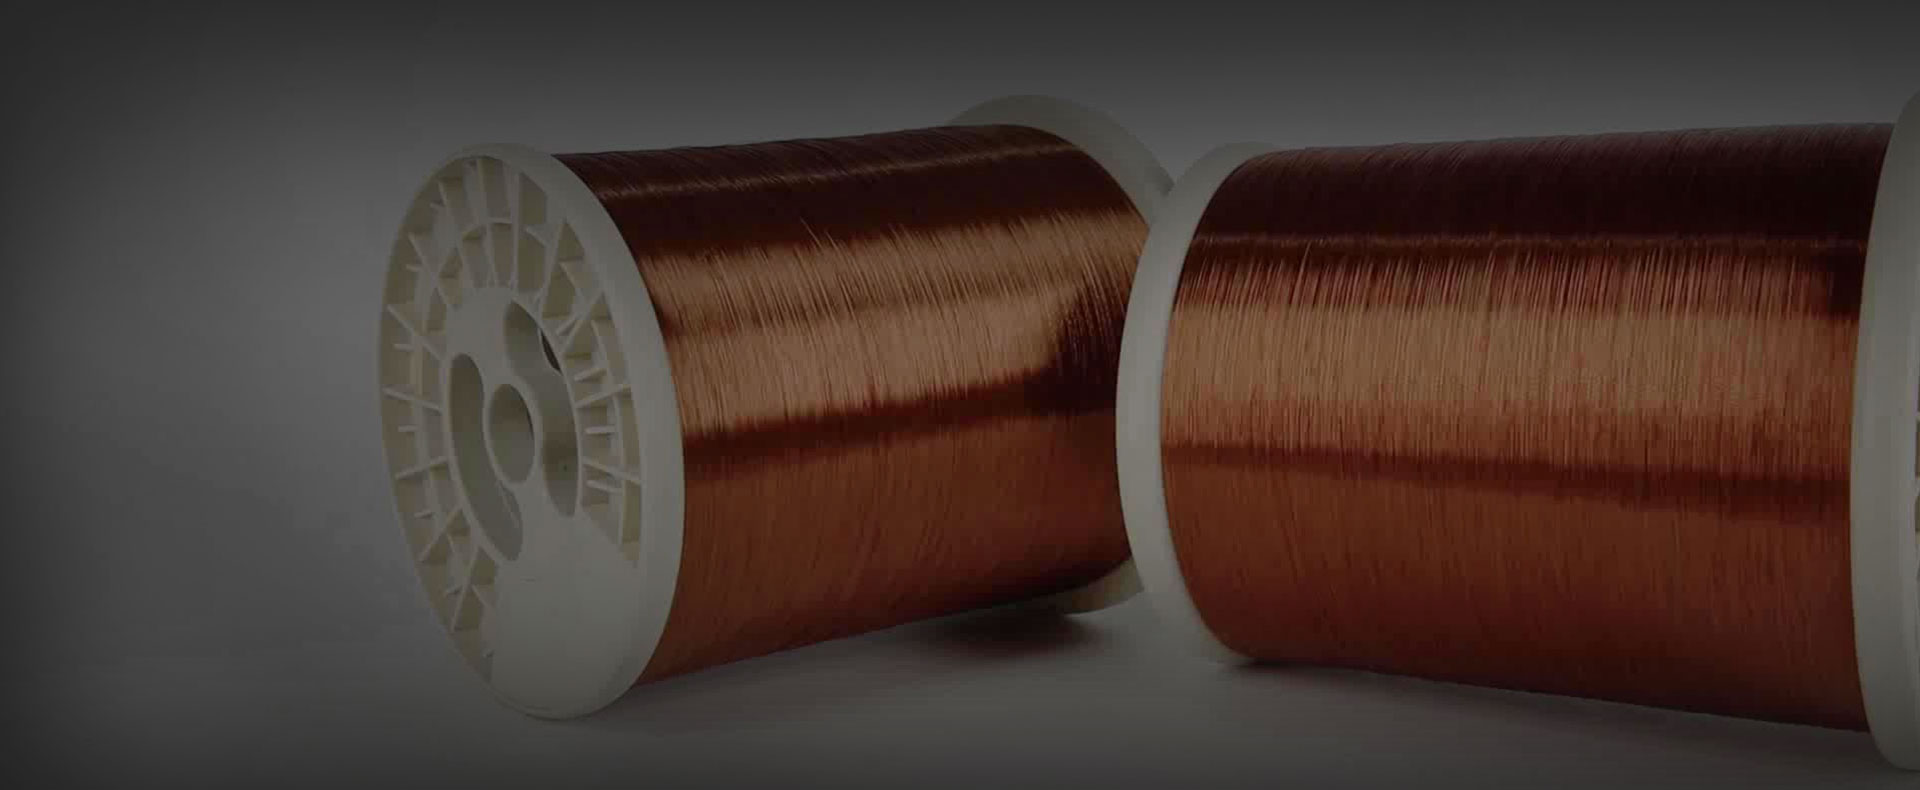 What are the advantages of cross-linked polyethylene cables and oil paper cables